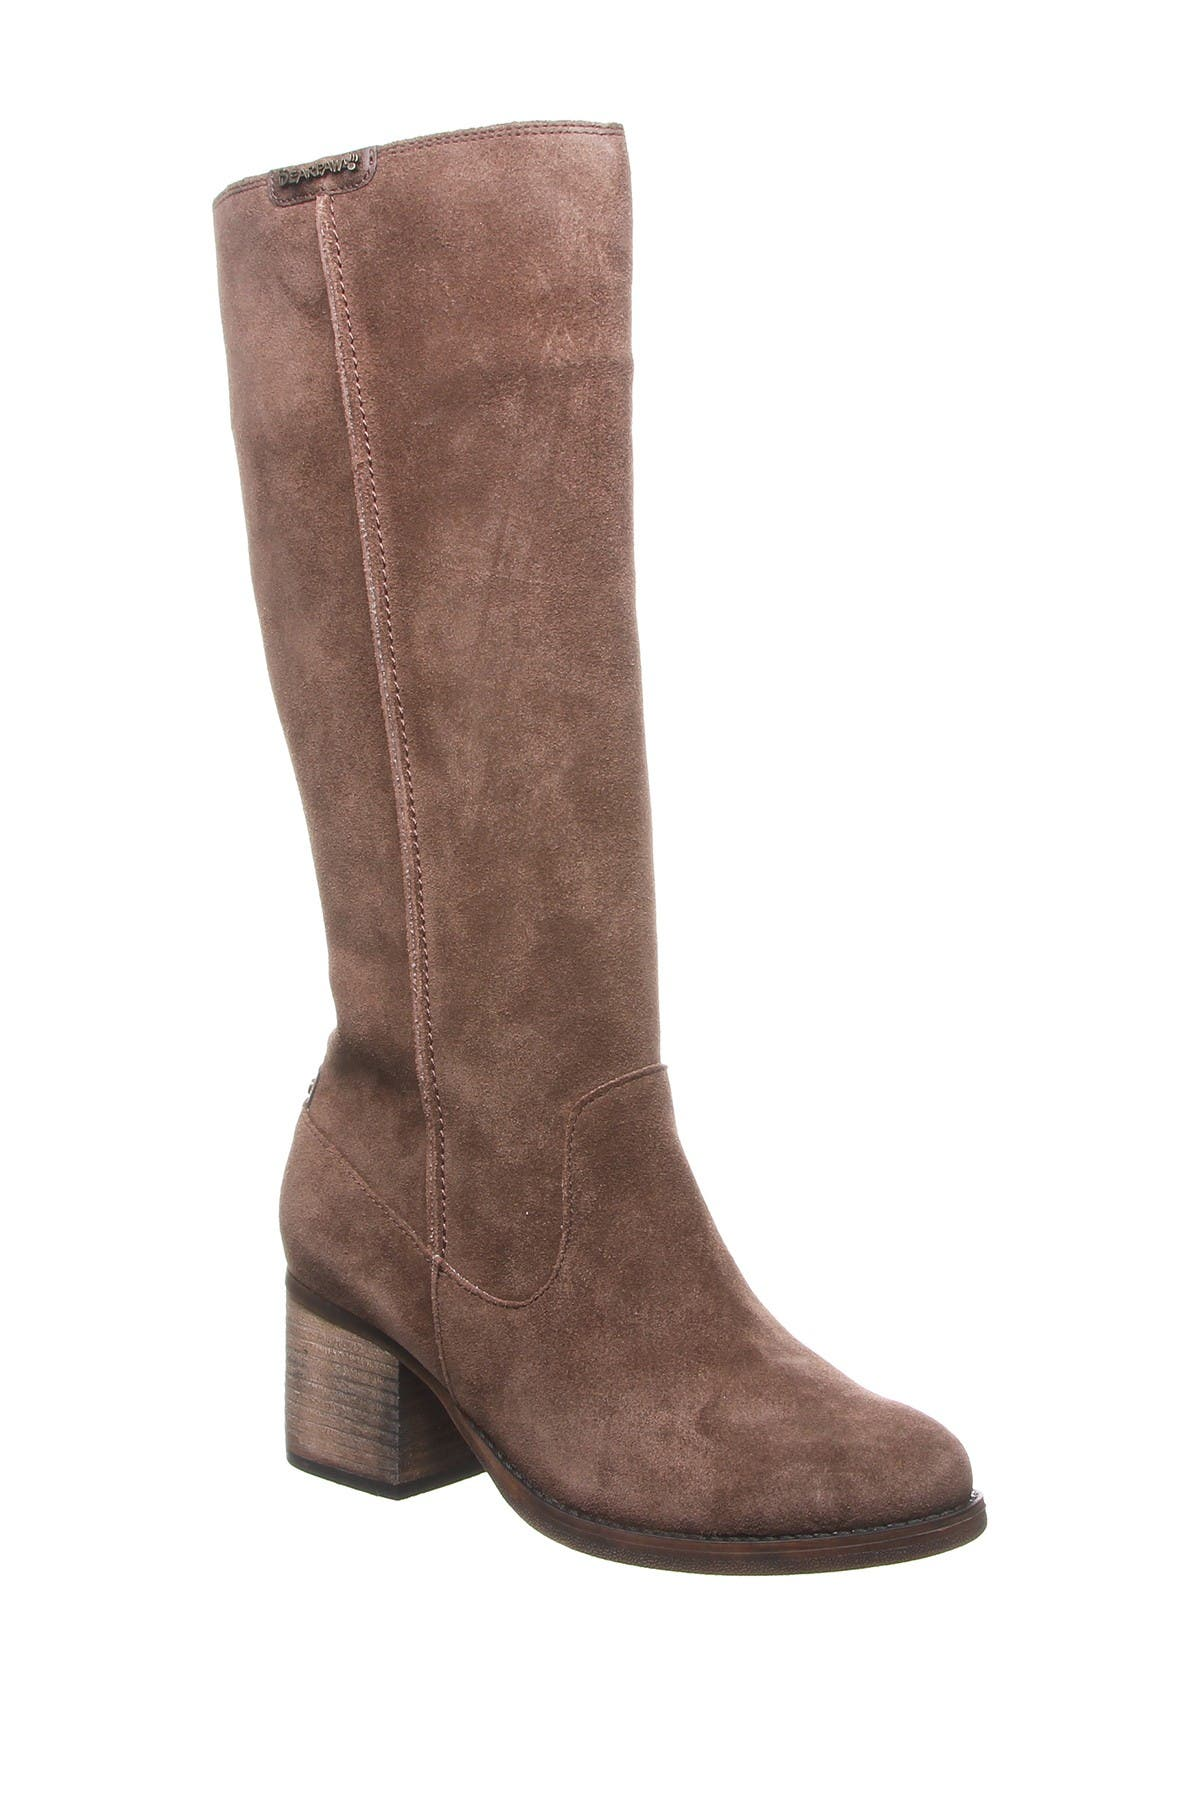 BEARPAW | Anthracite Suede Knee-High